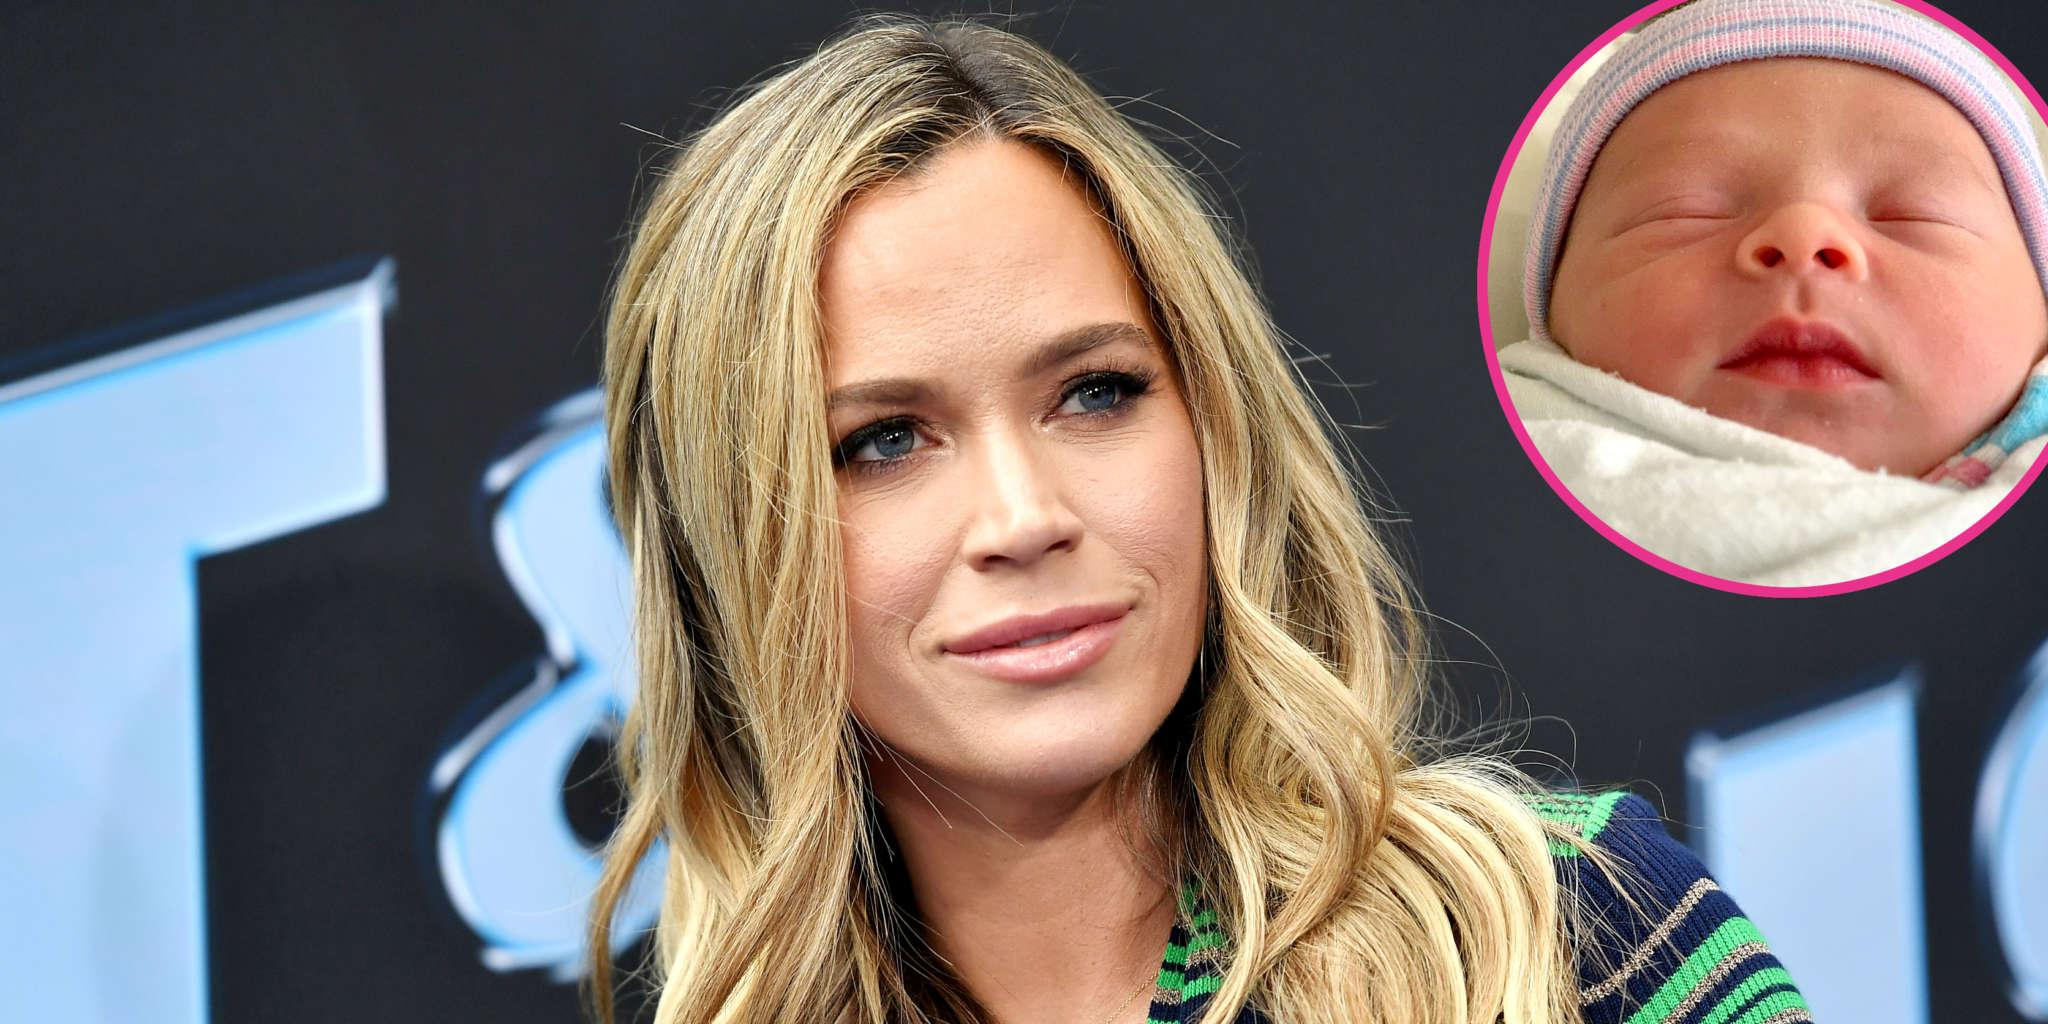 Teddi Mellencamp Says She's Lost Almost 50 Pounds And Is Only 15 Away From Her Pre-Baby Weight - Here's Her Secret!